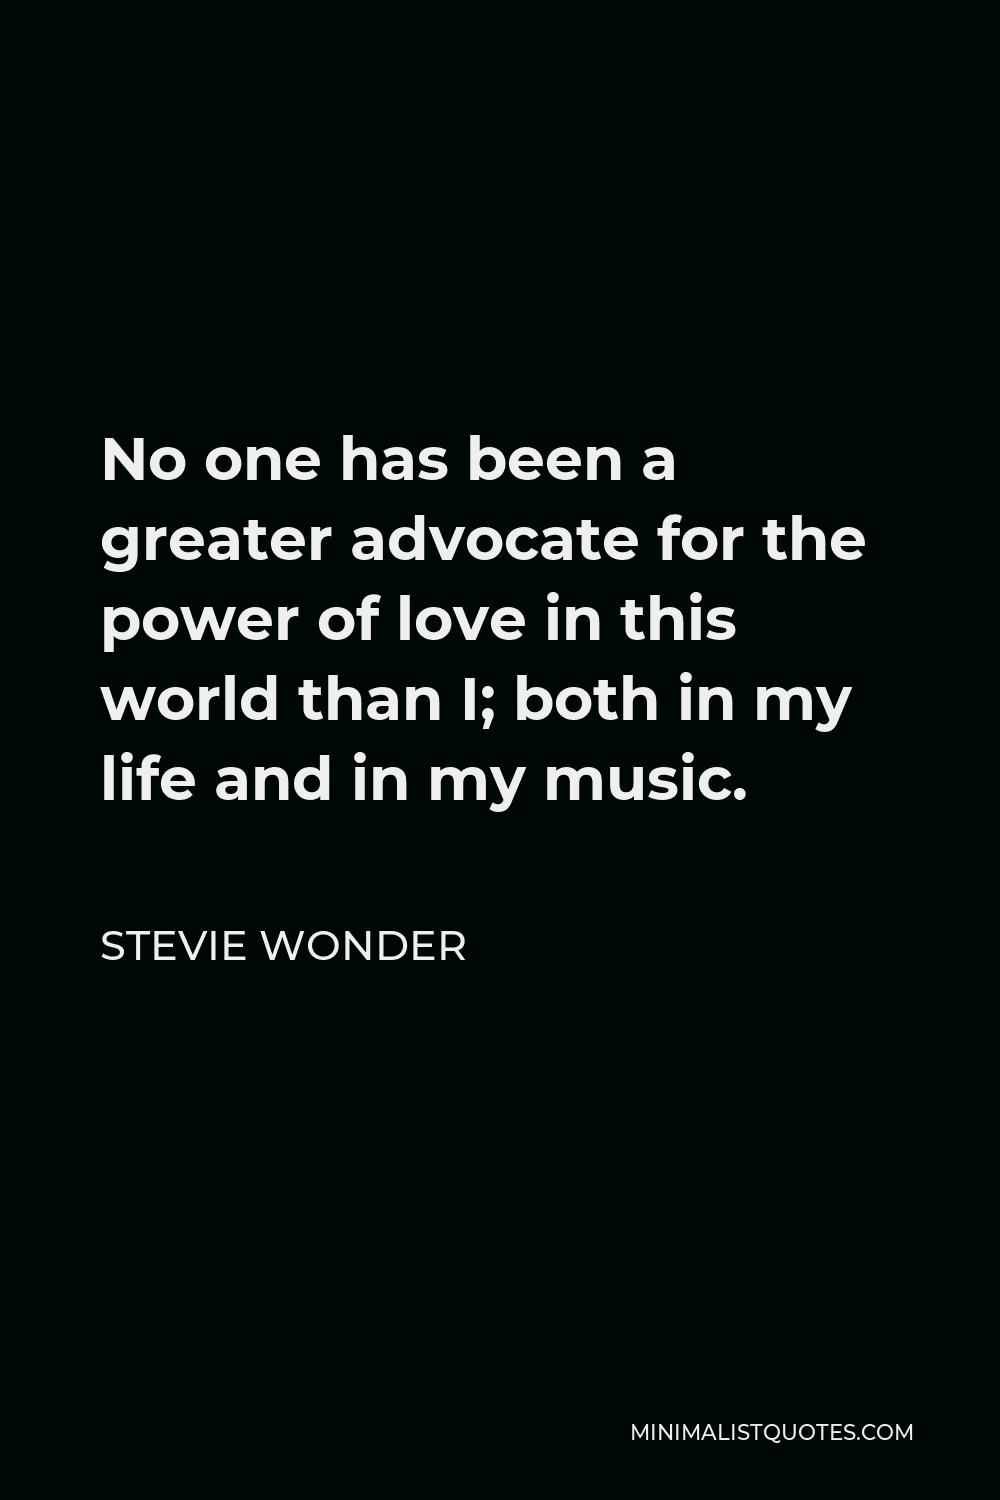 Stevie Wonder Quote - No one has been a greater advocate for the power of love in this world than I; both in my life and in my music.